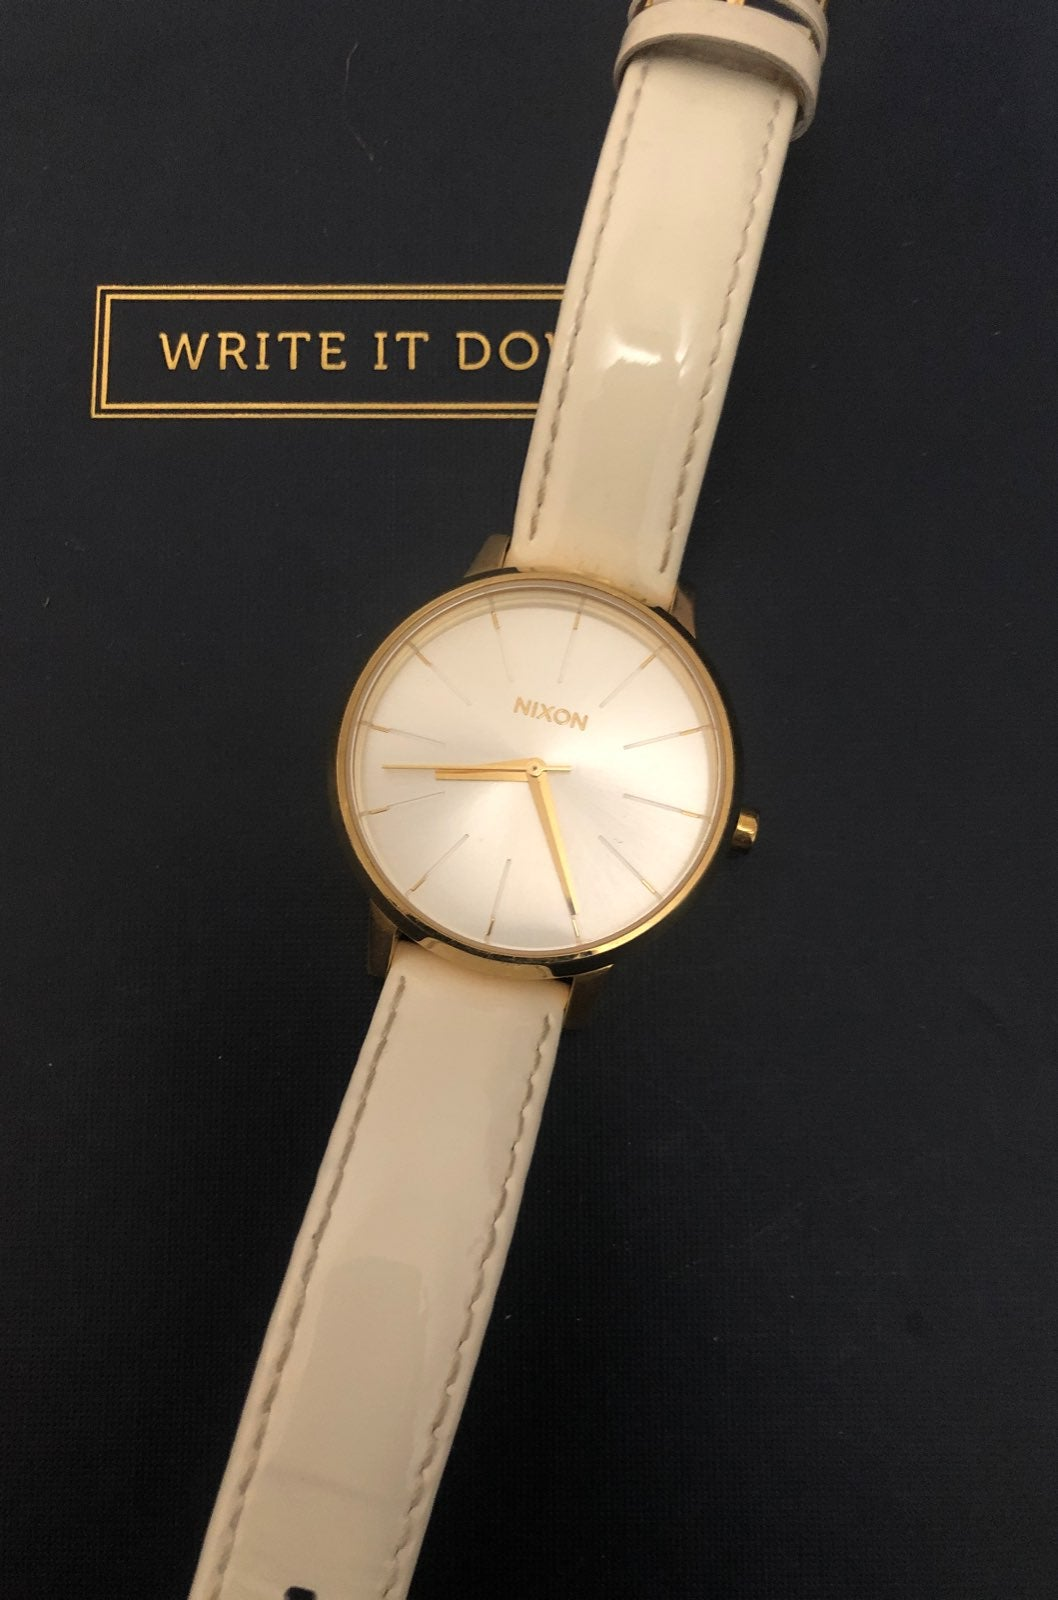 Nixon gold and white watch